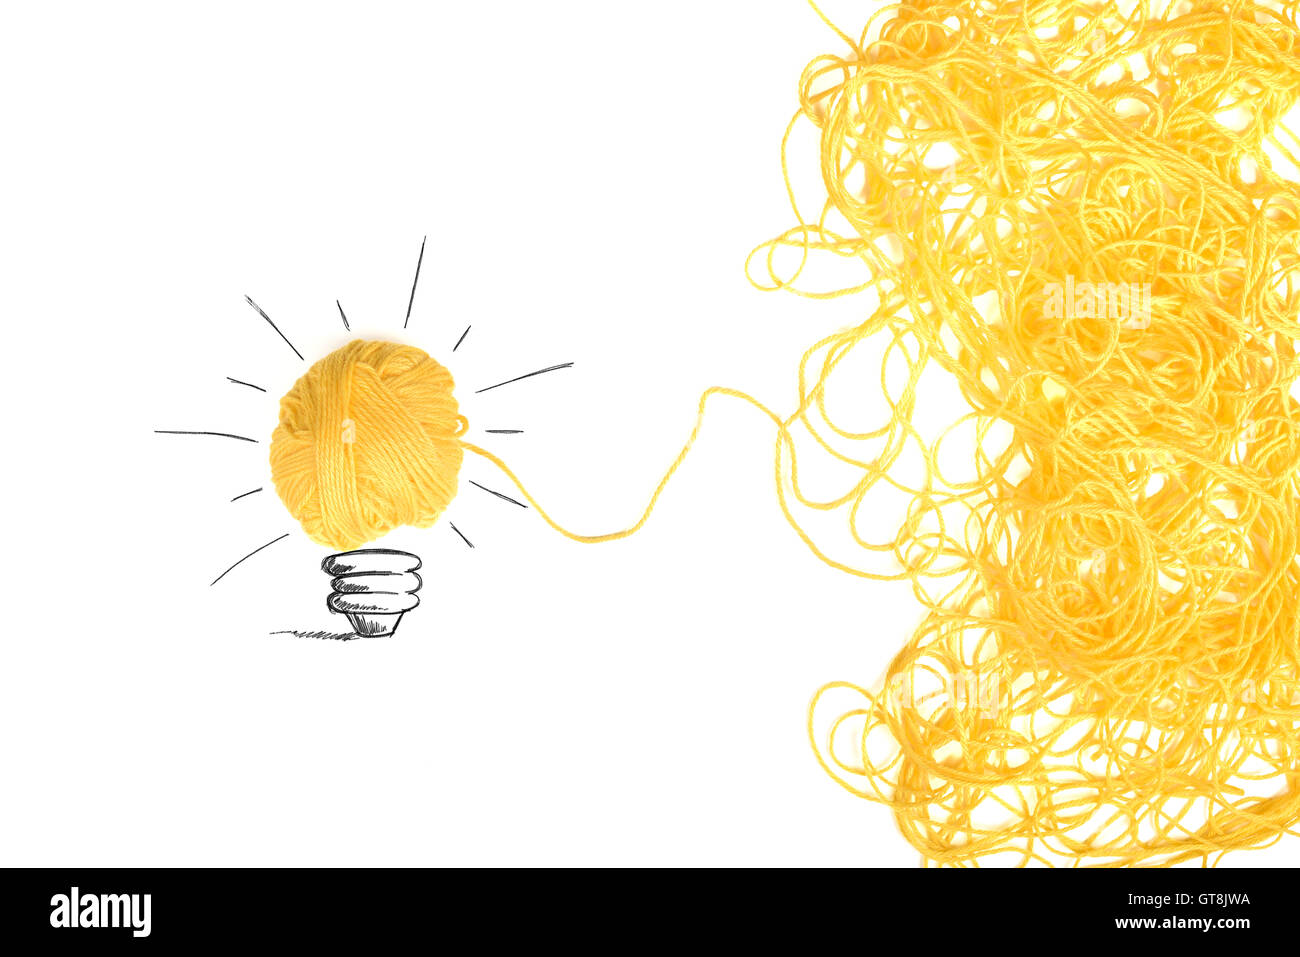 Concept of idea and innovation with wool ball - Stock Image